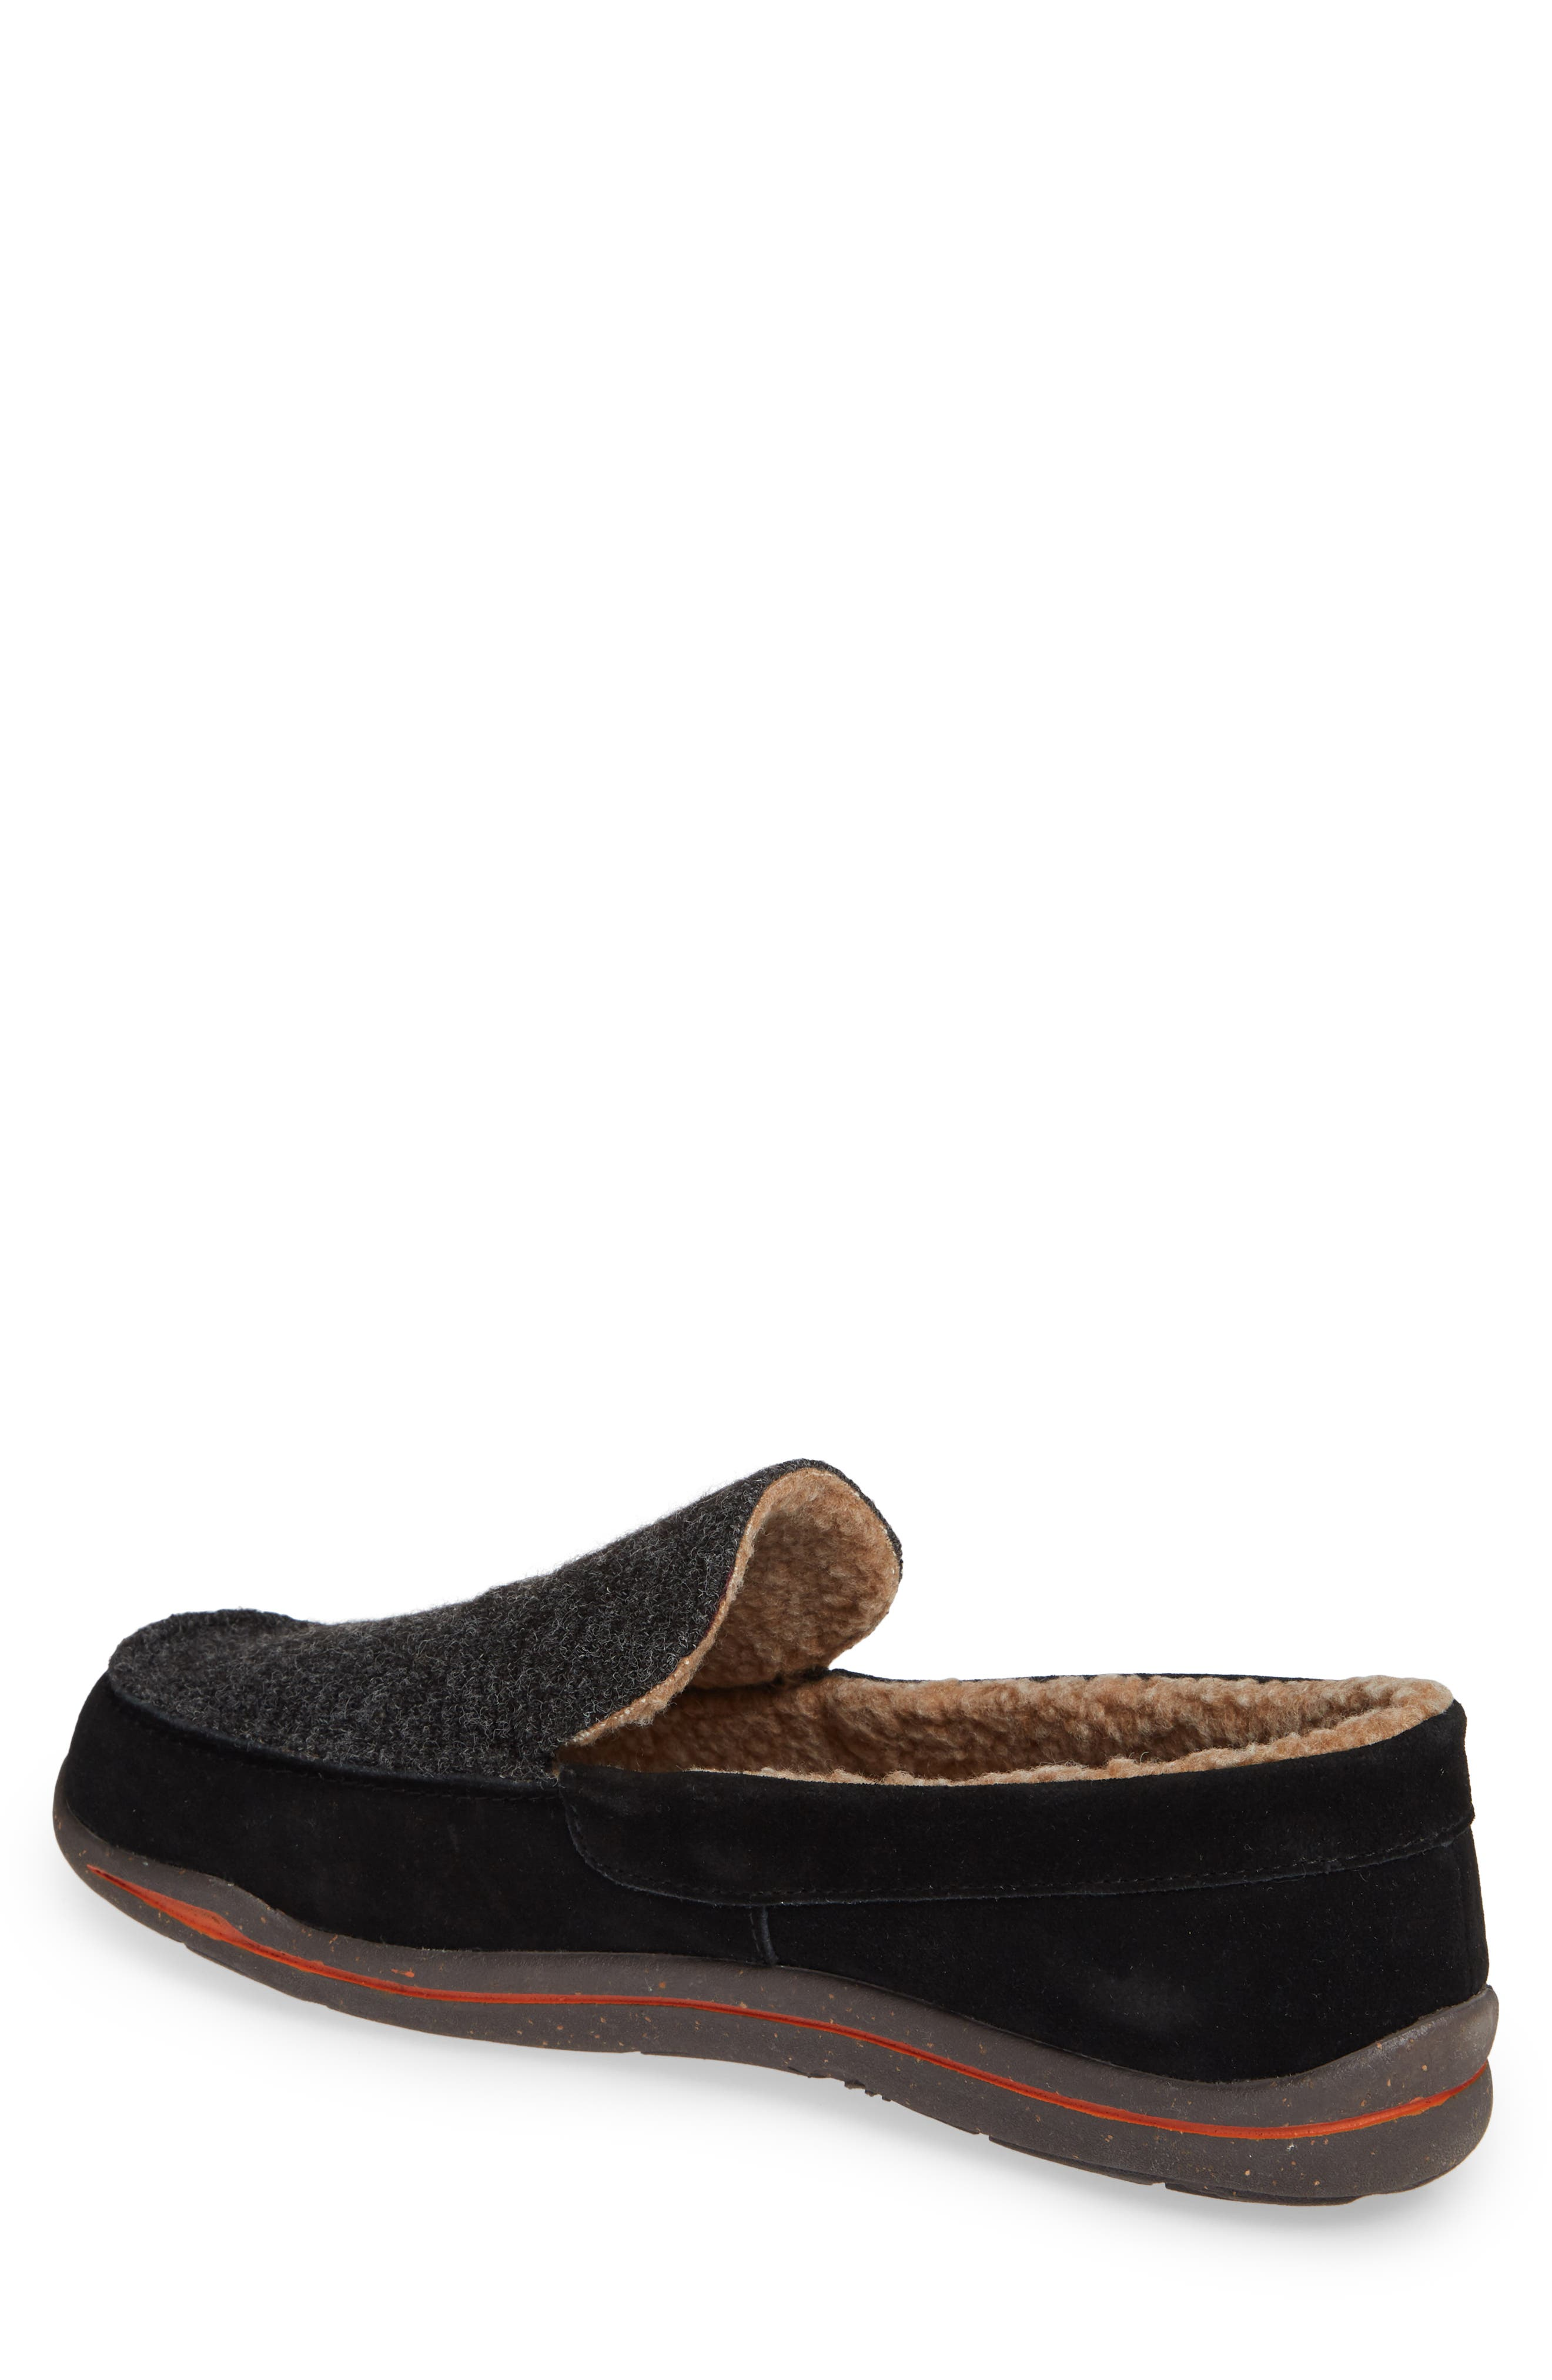 Ellsworth Moc Toe Slipper,                             Alternate thumbnail 2, color,                             BLACK